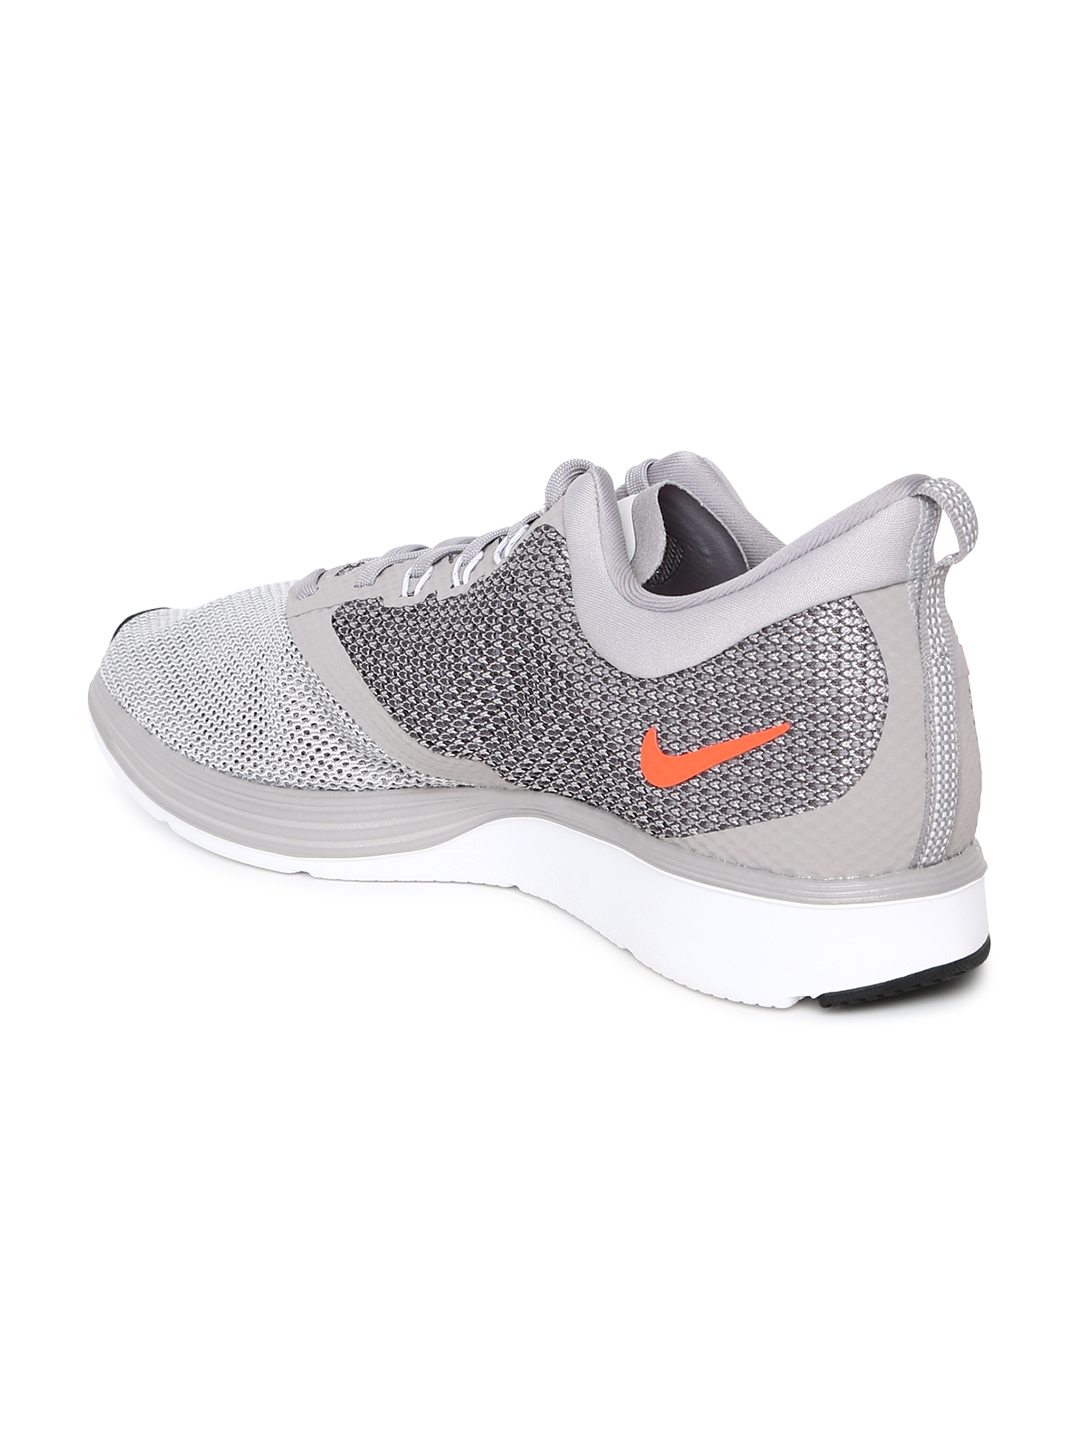 ce80bfbdbcdd Buy Nike Men Grey Zoom Strike Running Shoes - Sports Shoes for Men ...